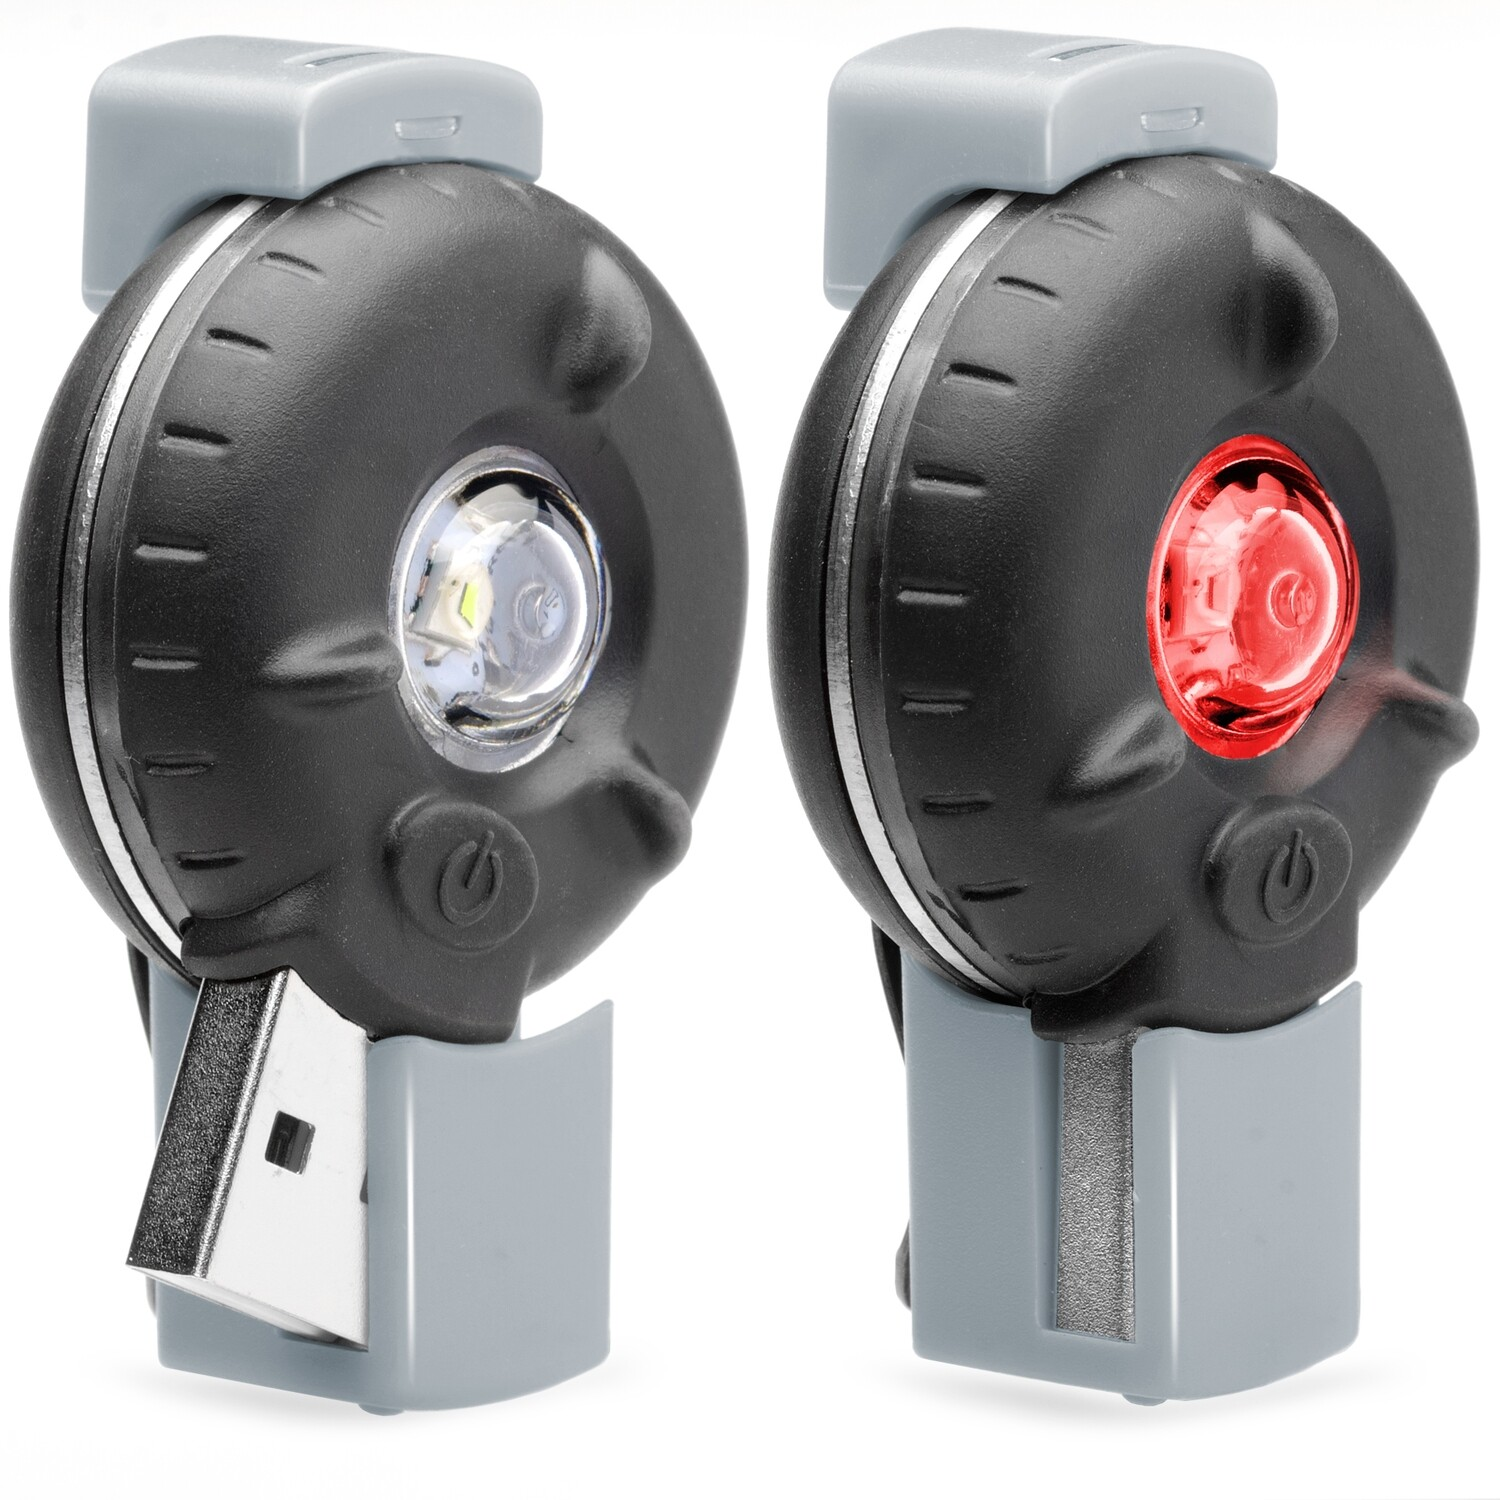 Bkin Smart Motion-Activated LED Personal Safety Light (Black/Grey Front & Rear Set)